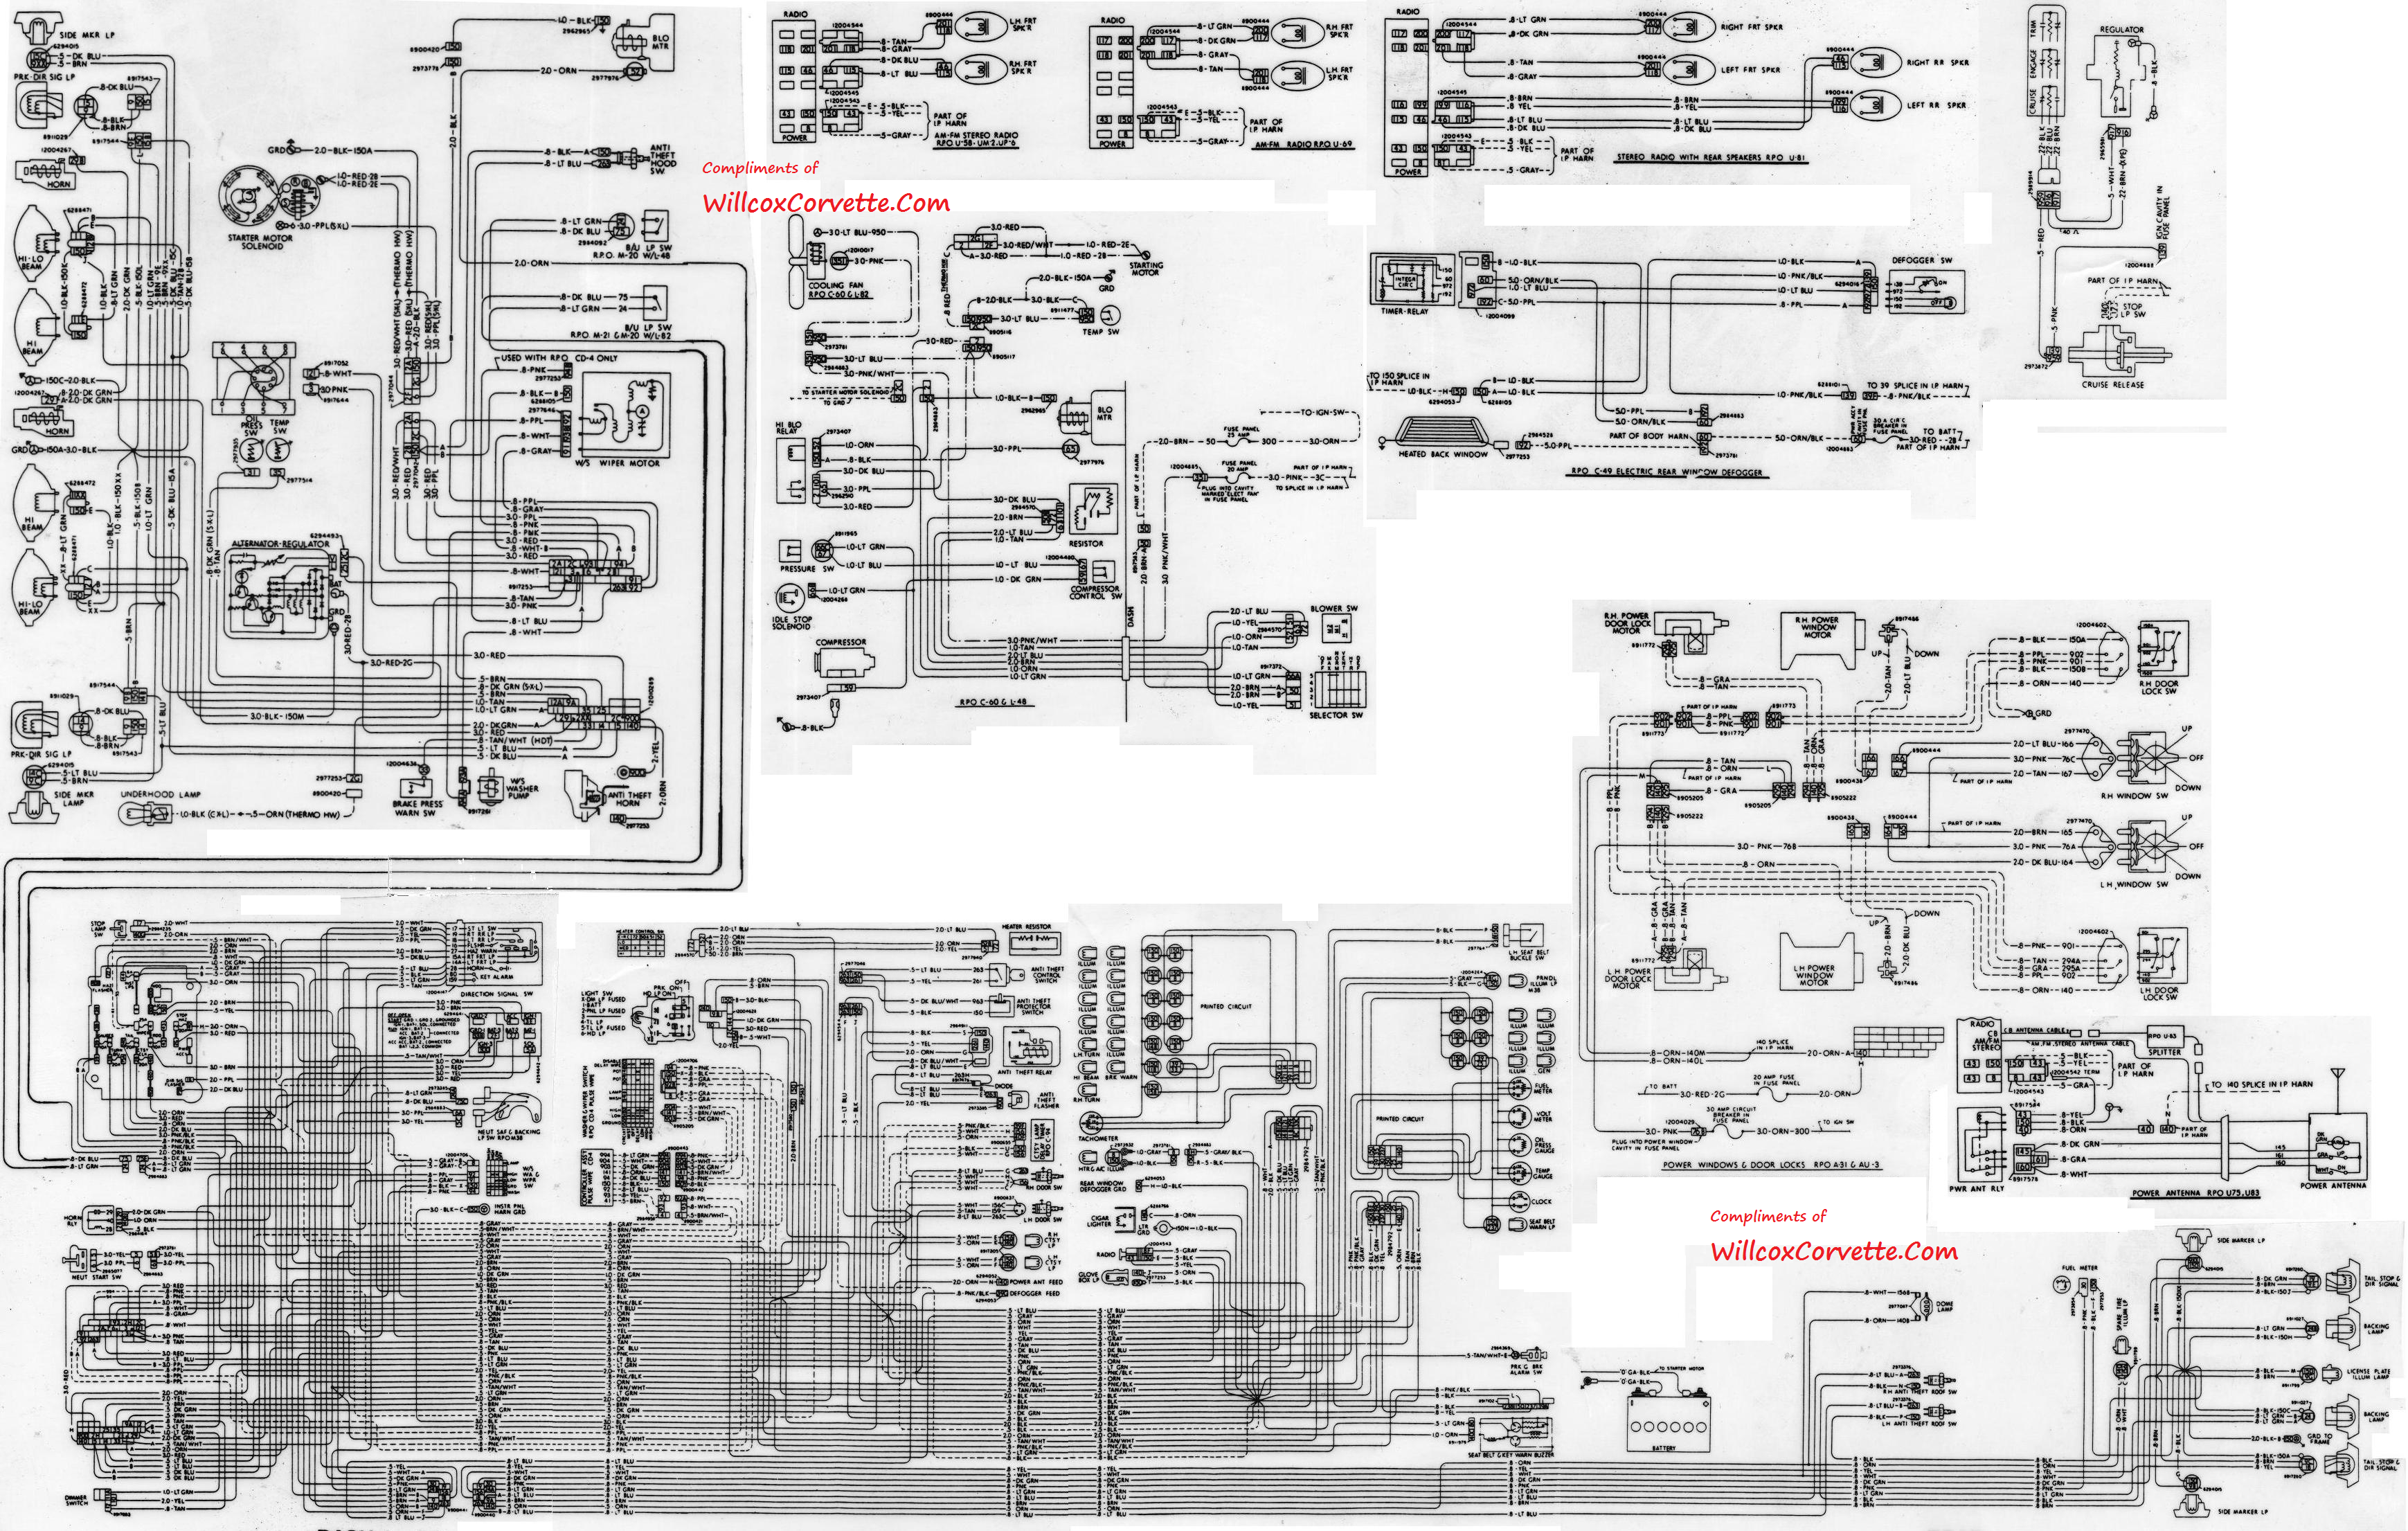 1979 wiring diagram - CorvetteForum - Chevrolet Corvette Forum ...